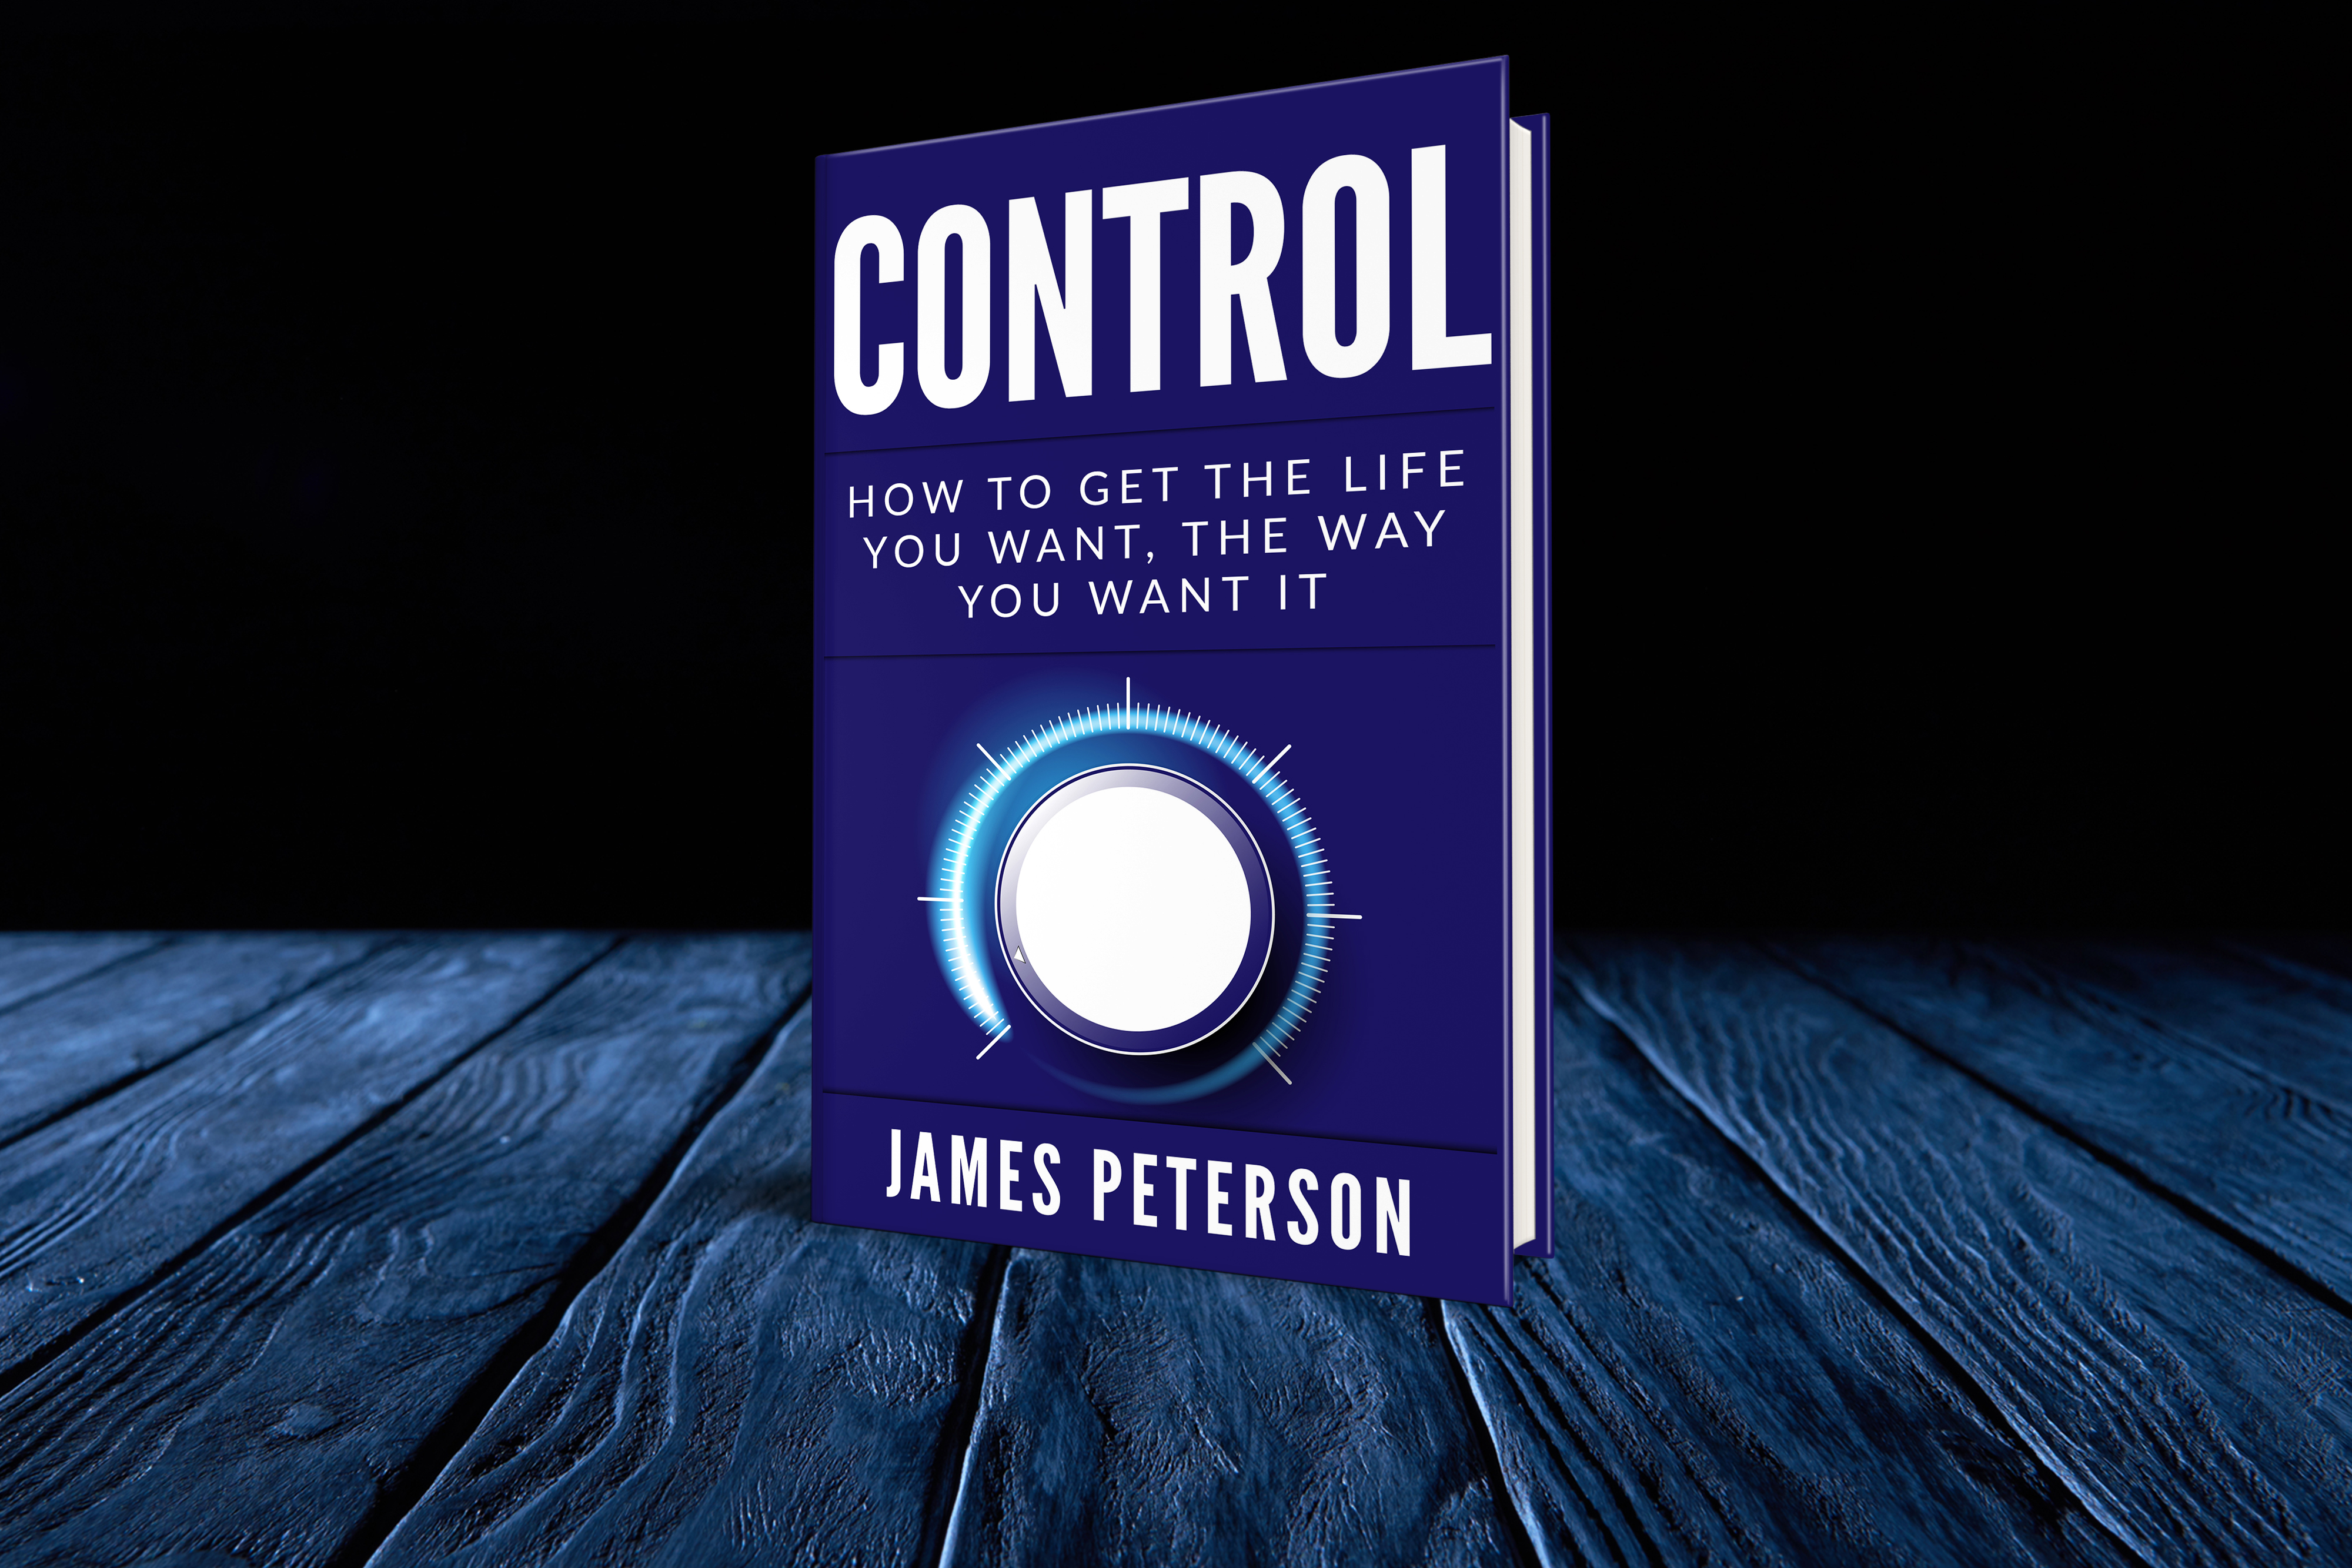 Control: How To Get The Life You Want, The Way You Want It (Pre-Order)